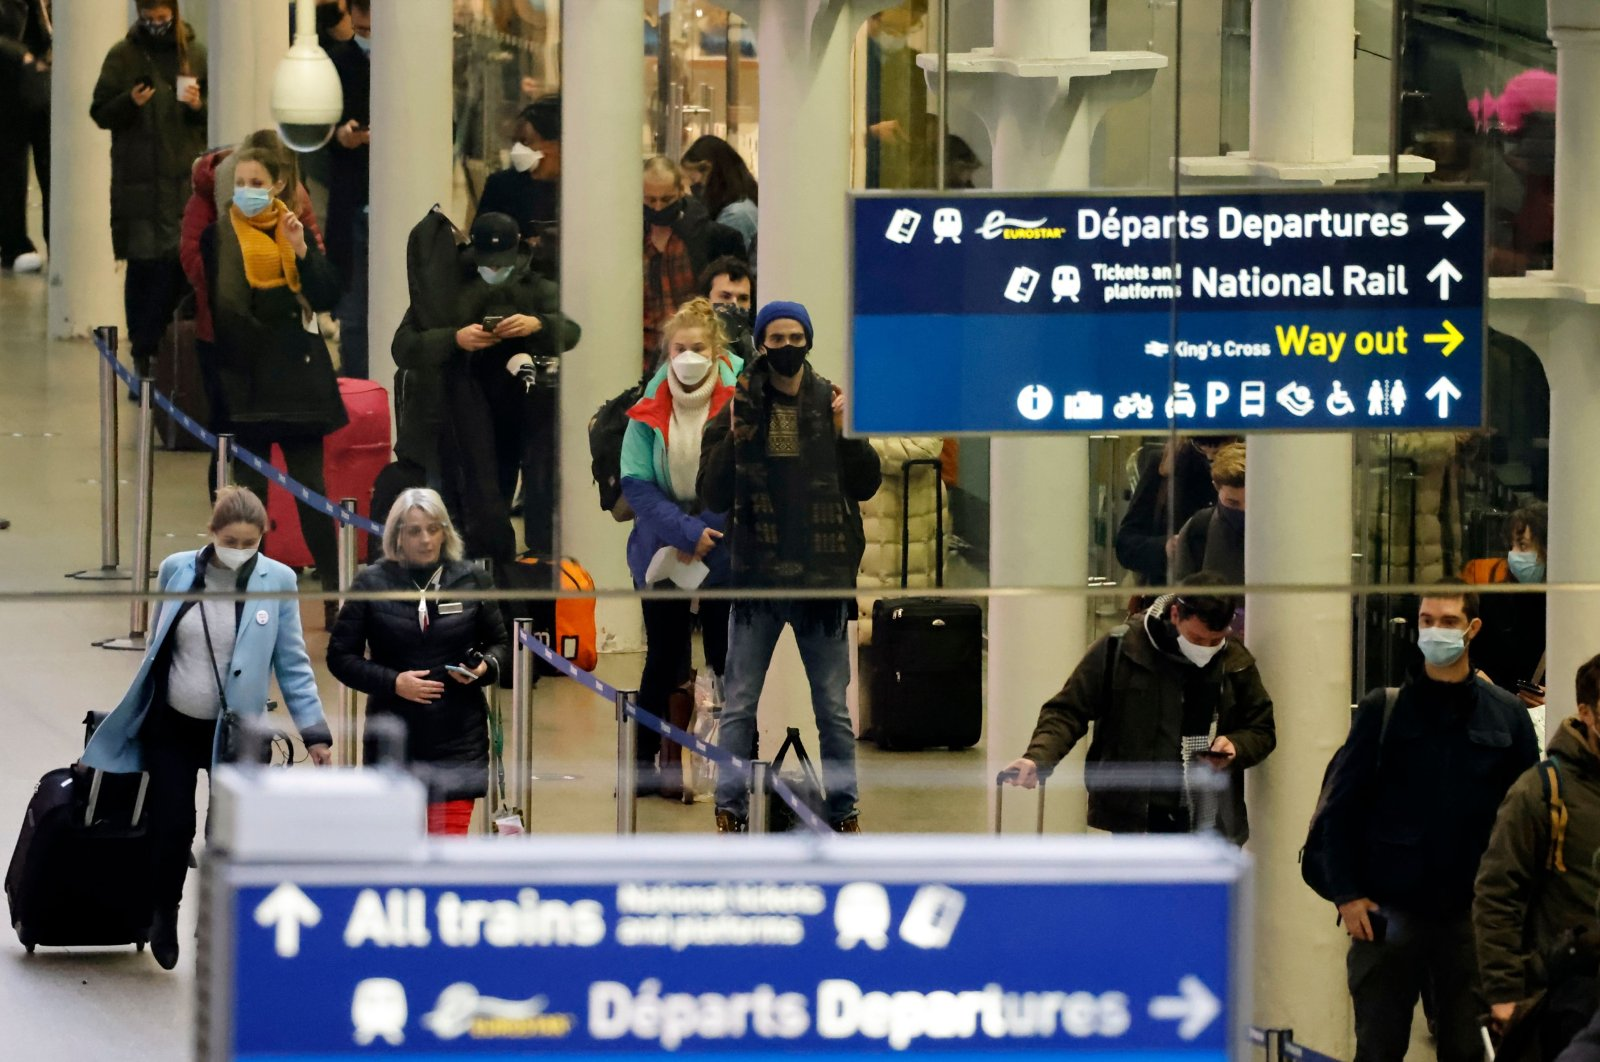 Passengers arrive at the Eurostar International Departures hall at St Pancras International station as services prepare to resume following a 48-hour closure of the French border due to a new coronavirus strain discovered in the U.K., in London, Britain, Dec. 23, 2020. (AFP Photo)